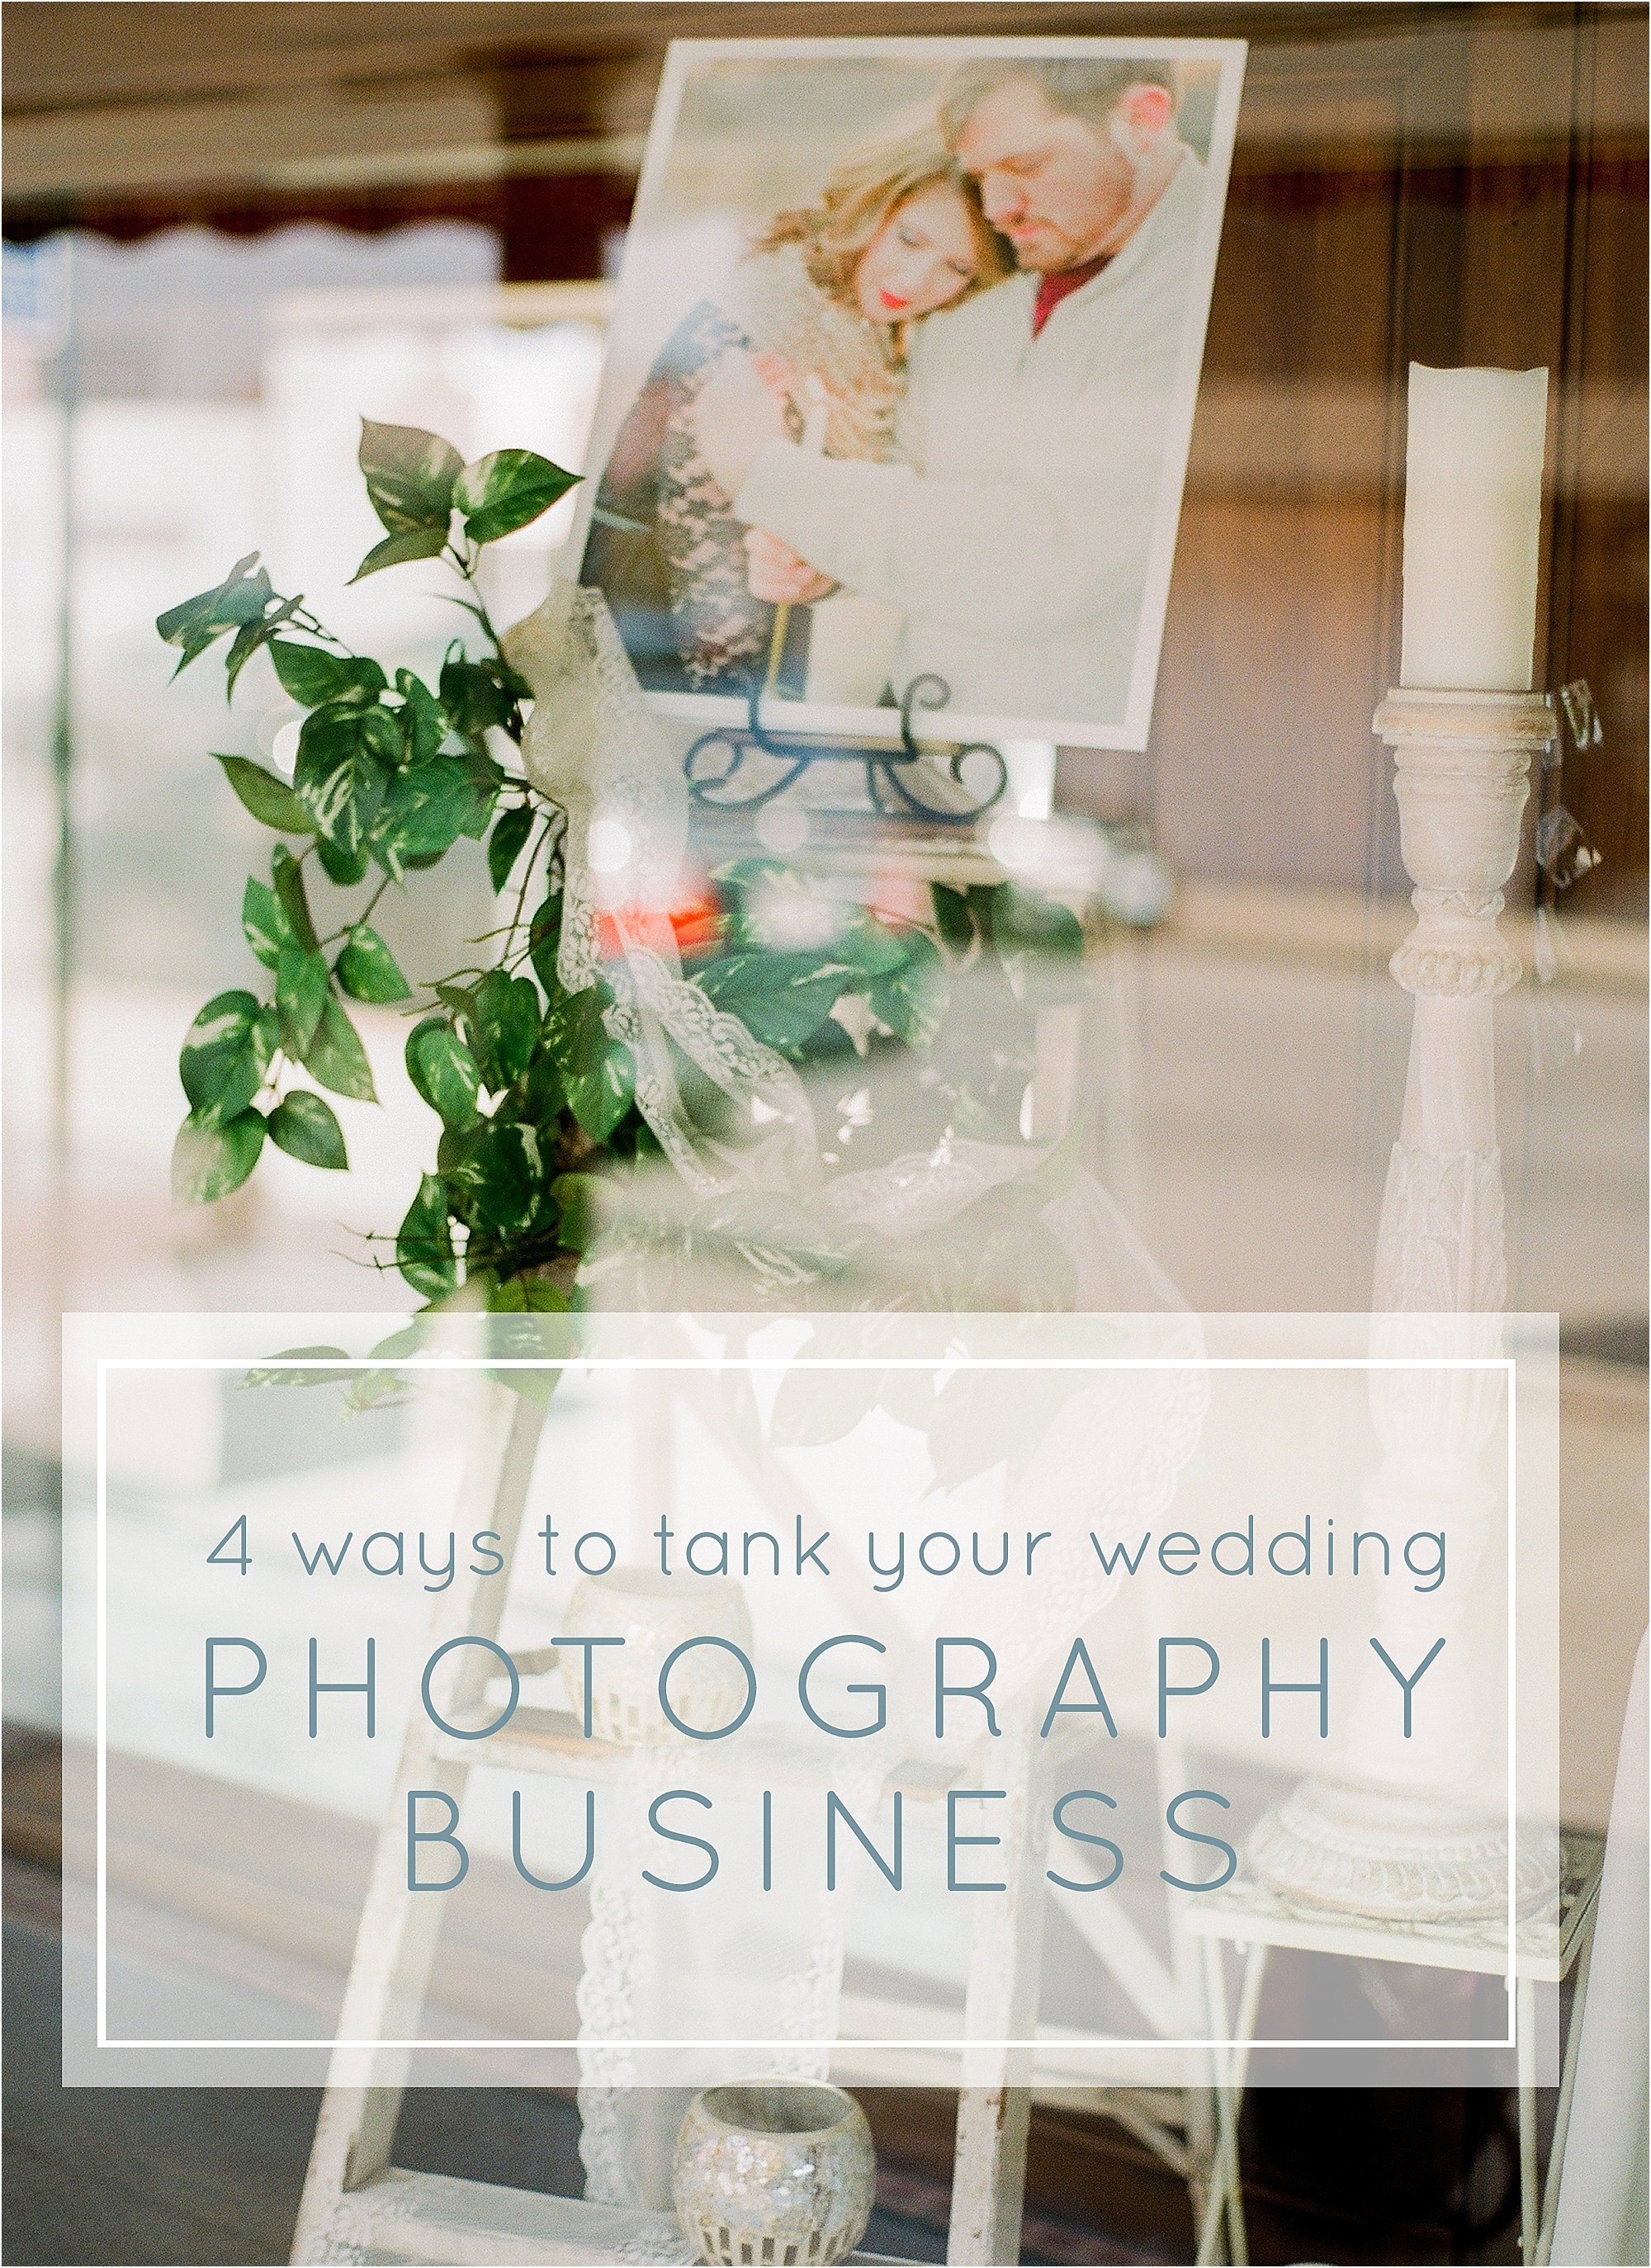 4 Ways to Tank Your Wedding Photography Business - The Jordan Brittley Blog